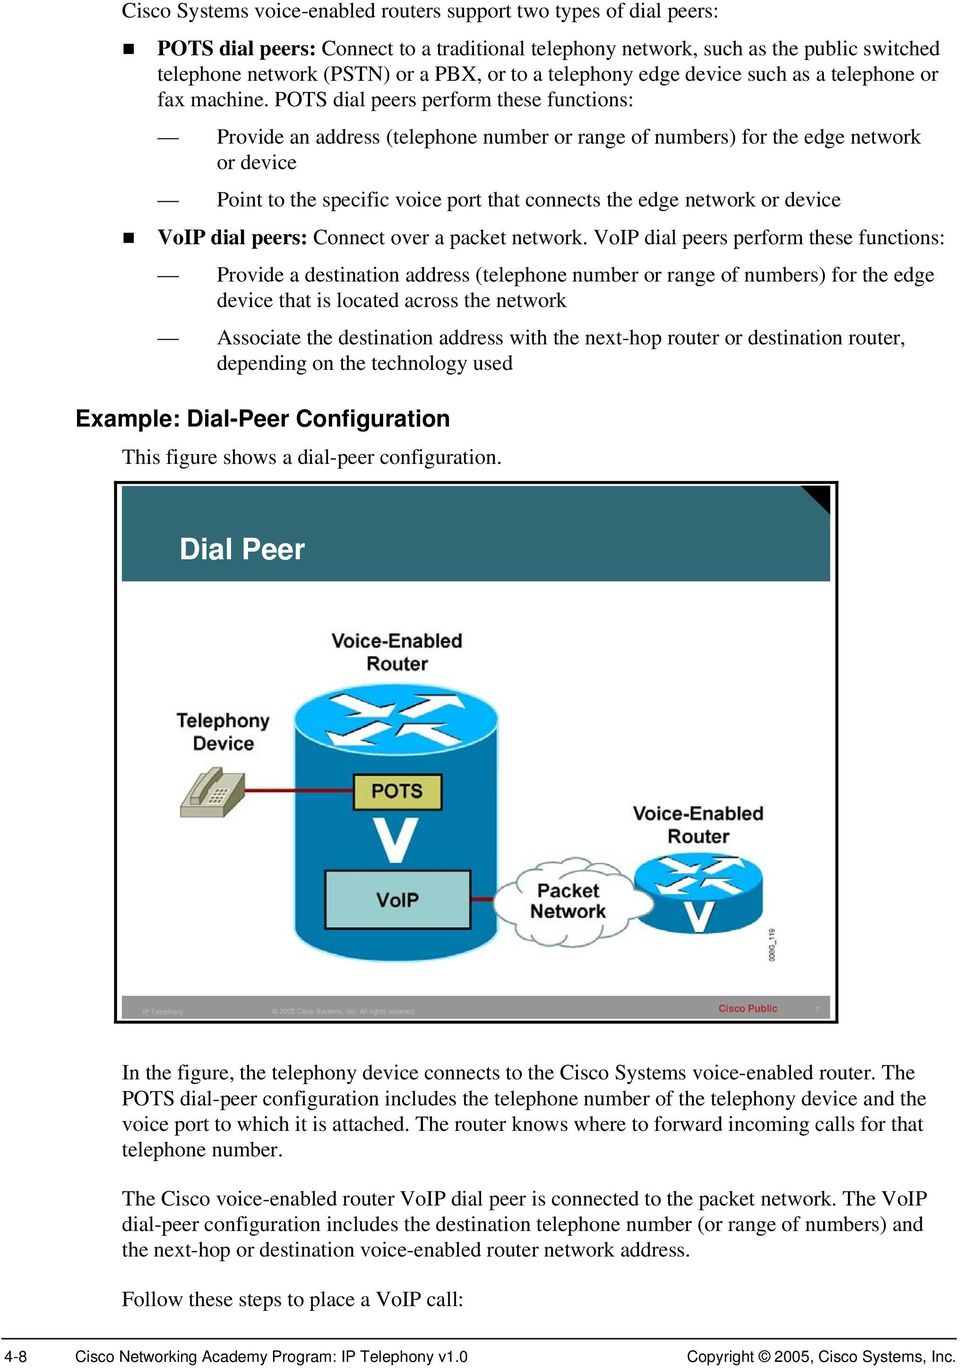 Dial Peer  Example: Dial-Peer Configuration - PDF